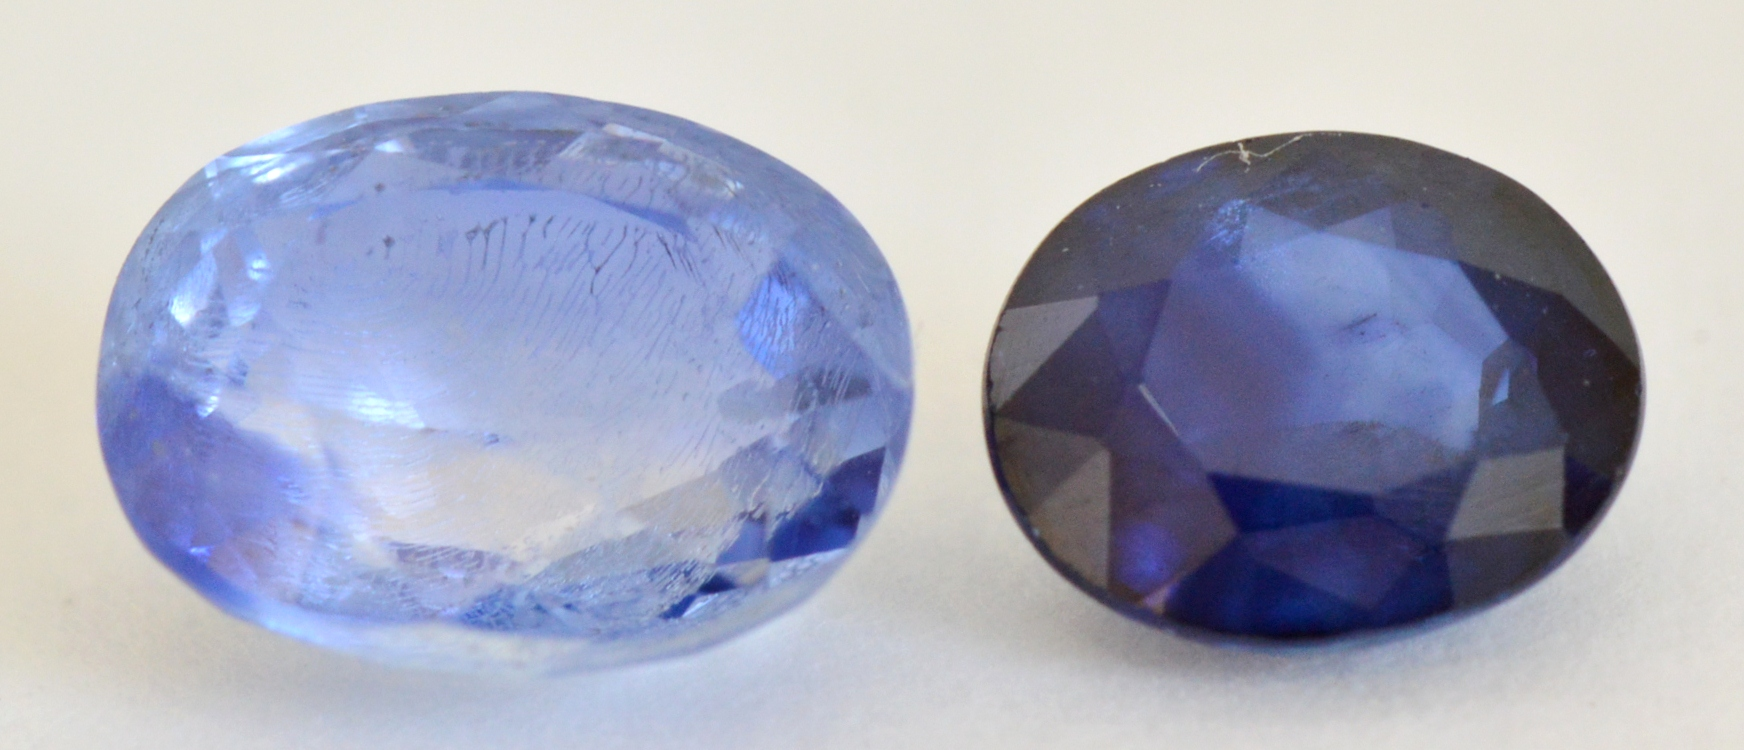 unheated know on sapphires conclusion heated vs between and sapphire difference